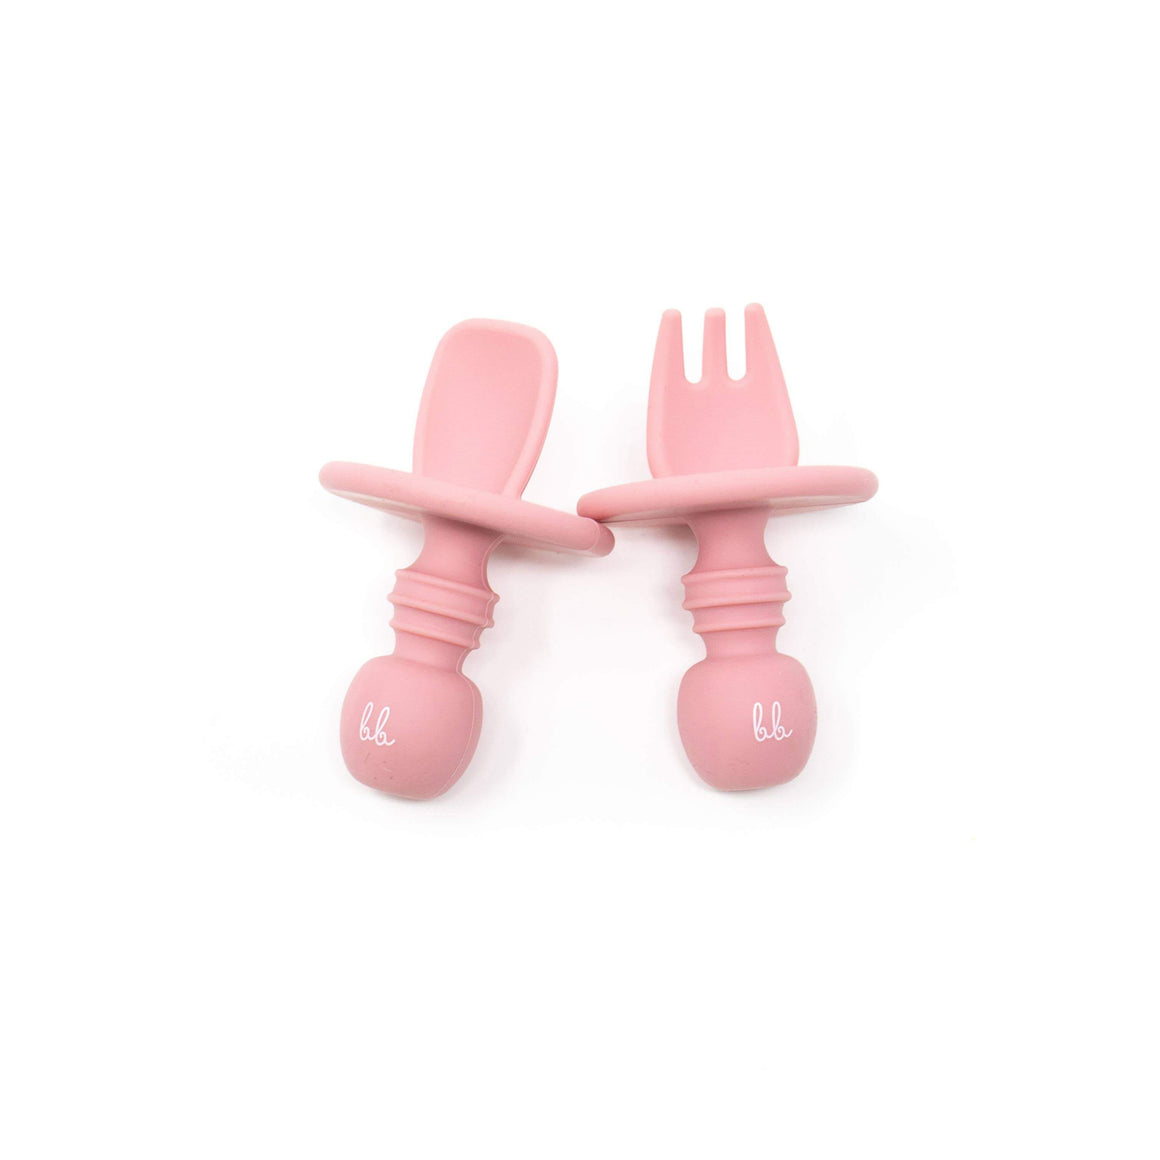 Baby Bar & Co by Three Hearts | Silicone Utensils | Dusty Rose